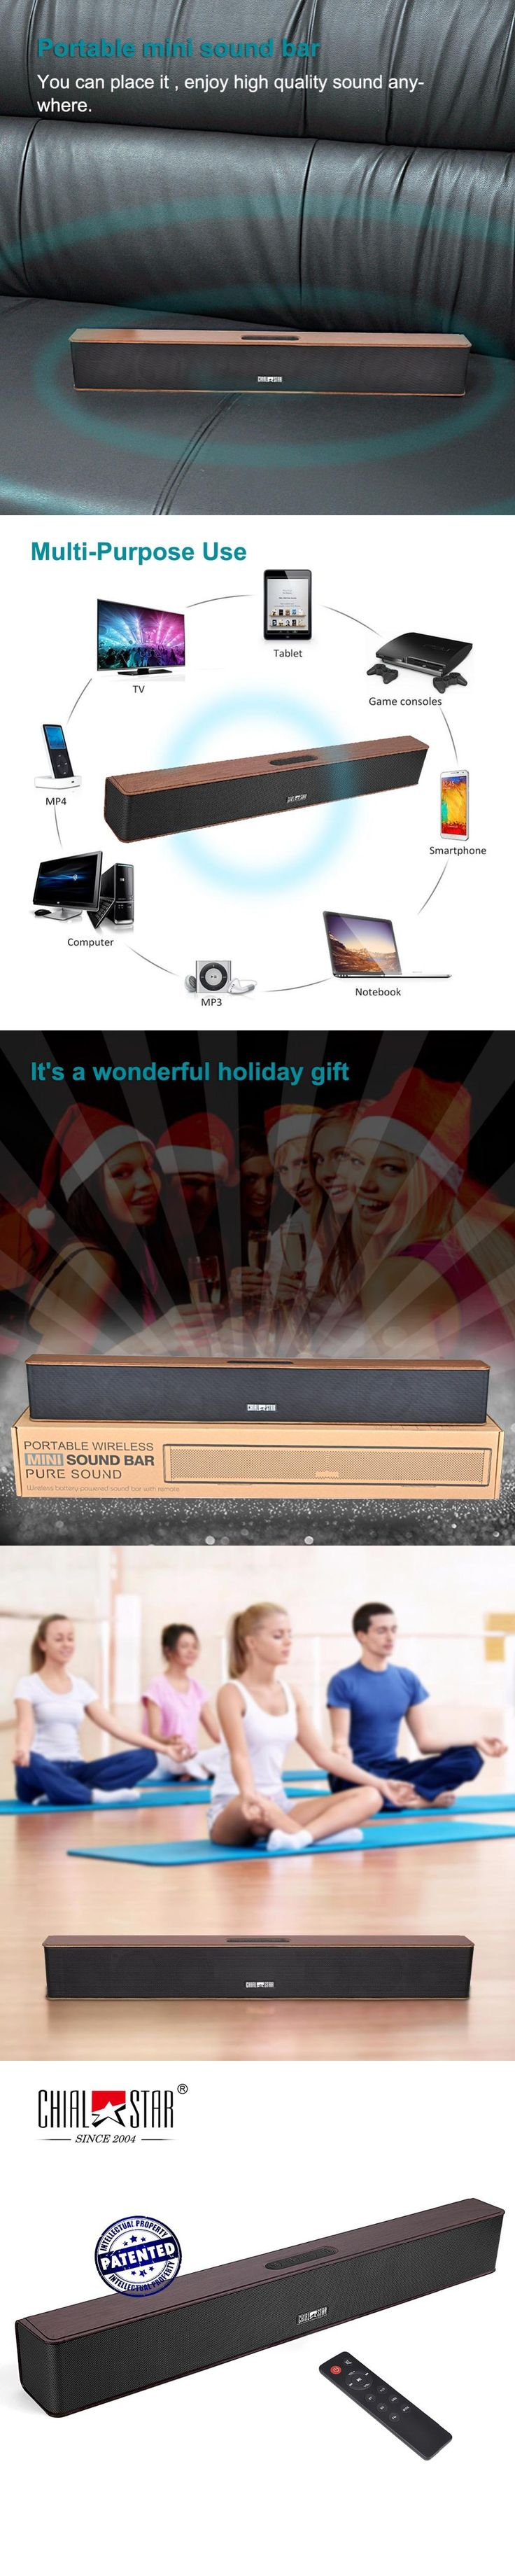 Wood Grain Wireless Soundbar Chialstar Mini Sound Bar Audio Stereo Speakers Music Player for Gym,Yoga,Party,Outdoor,Cycling